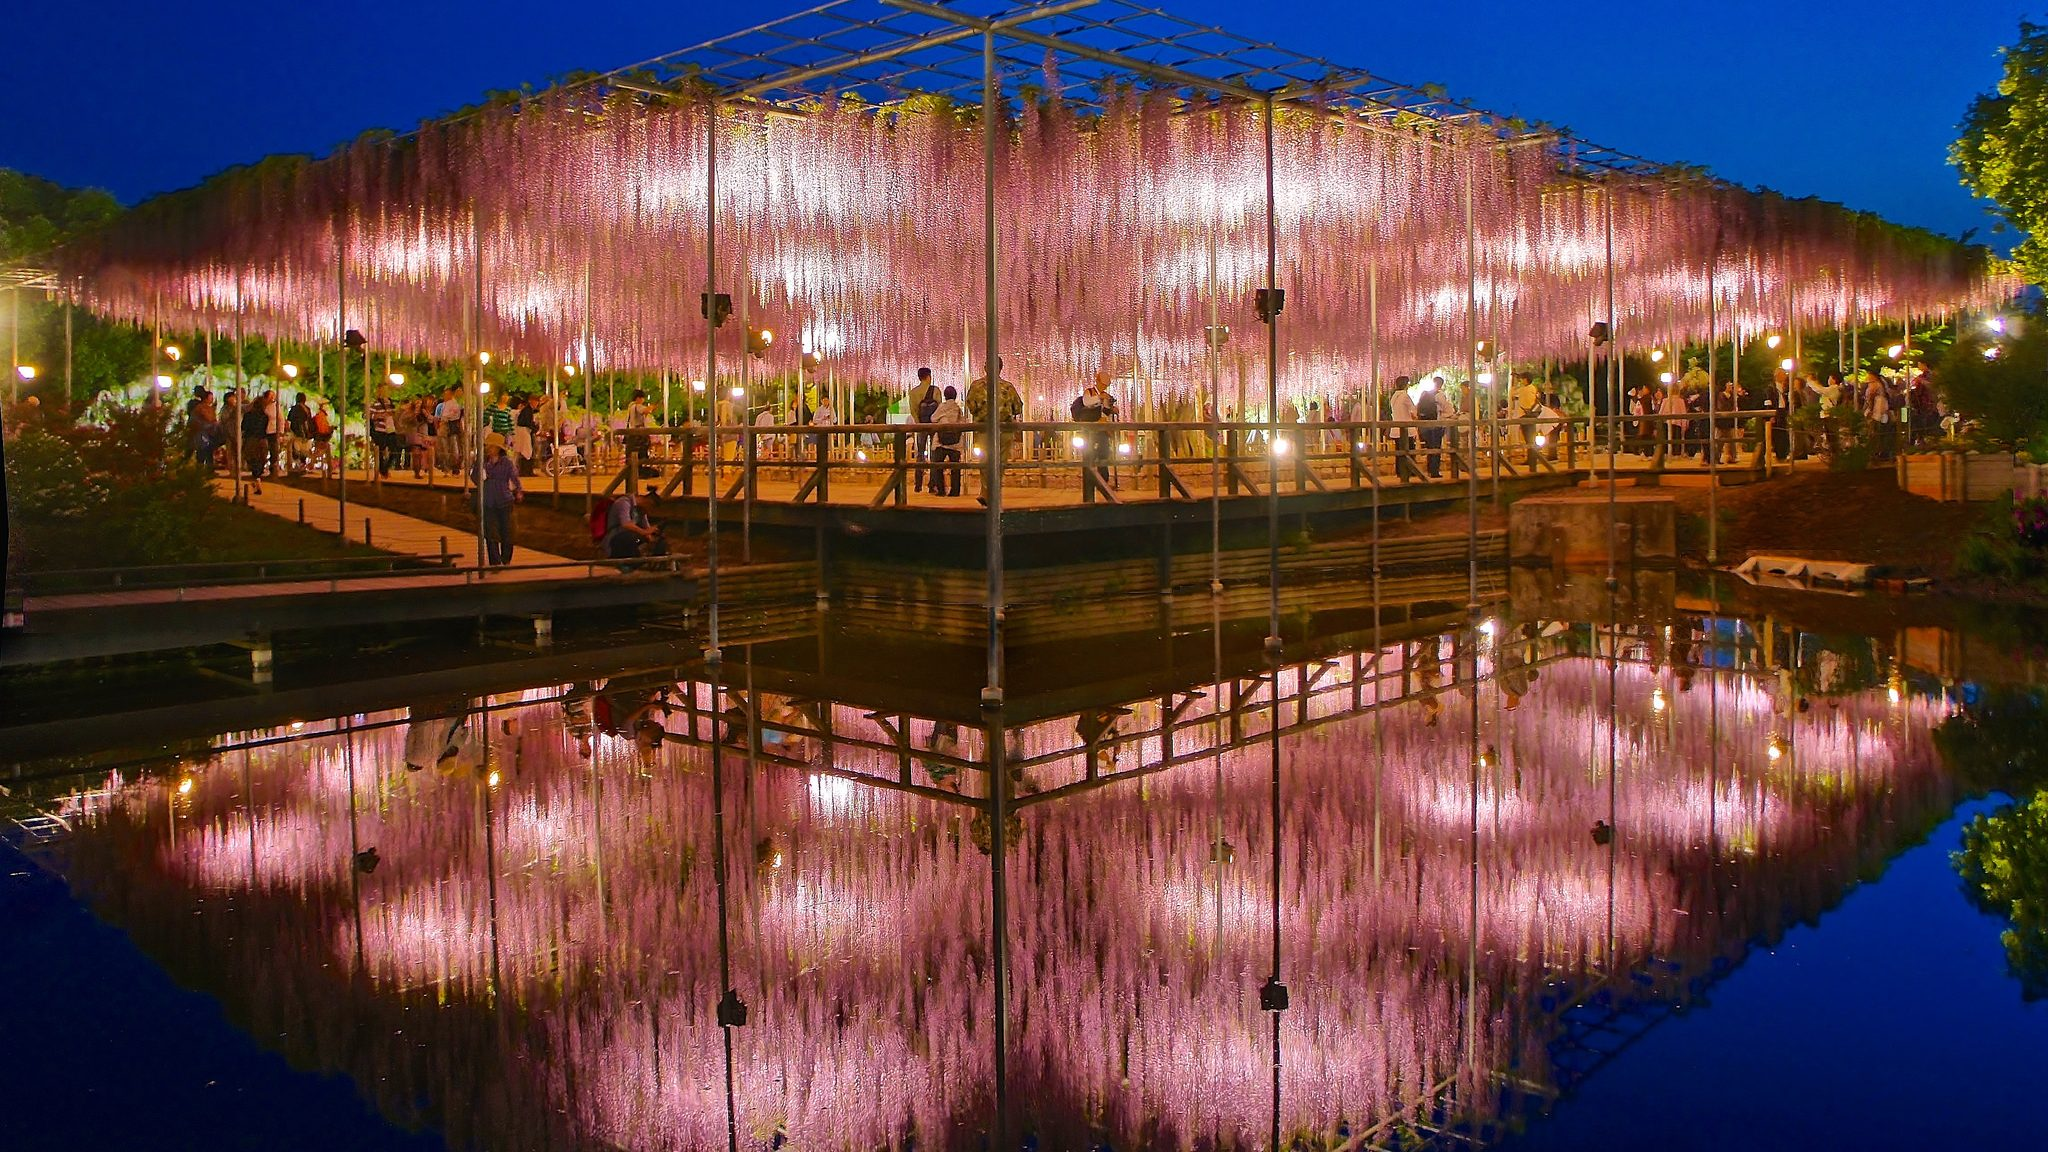 Image: Giant Flowering Wisteria tree reflected in water